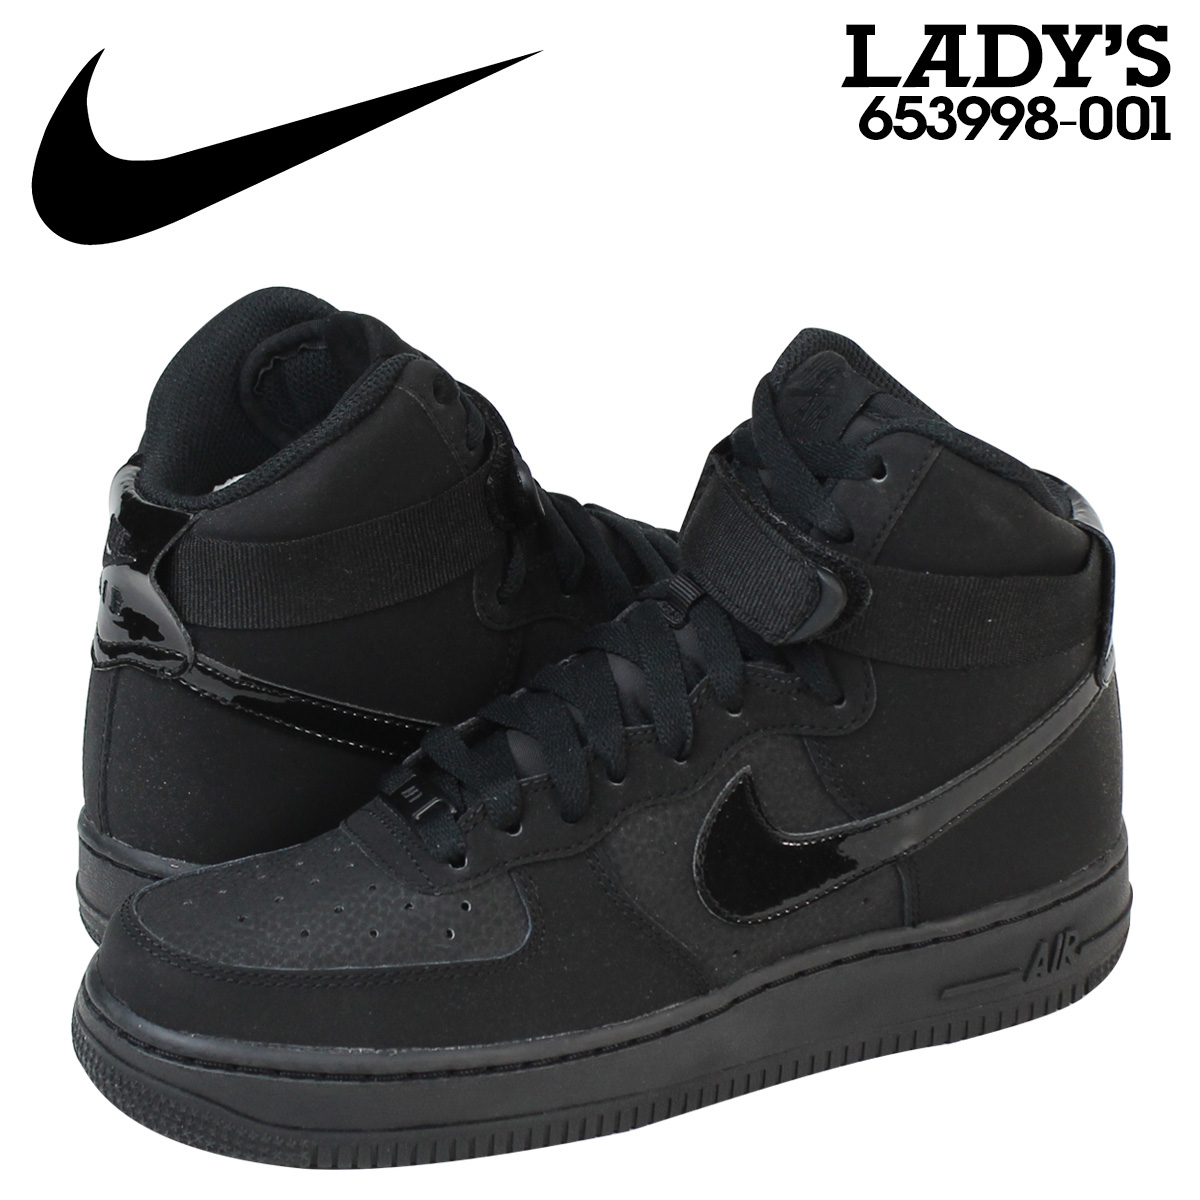 NIKE Nike air force sneakers Lady's AIR FORCE 1 HI GS air force 1 high  653,998-001 shoes black black